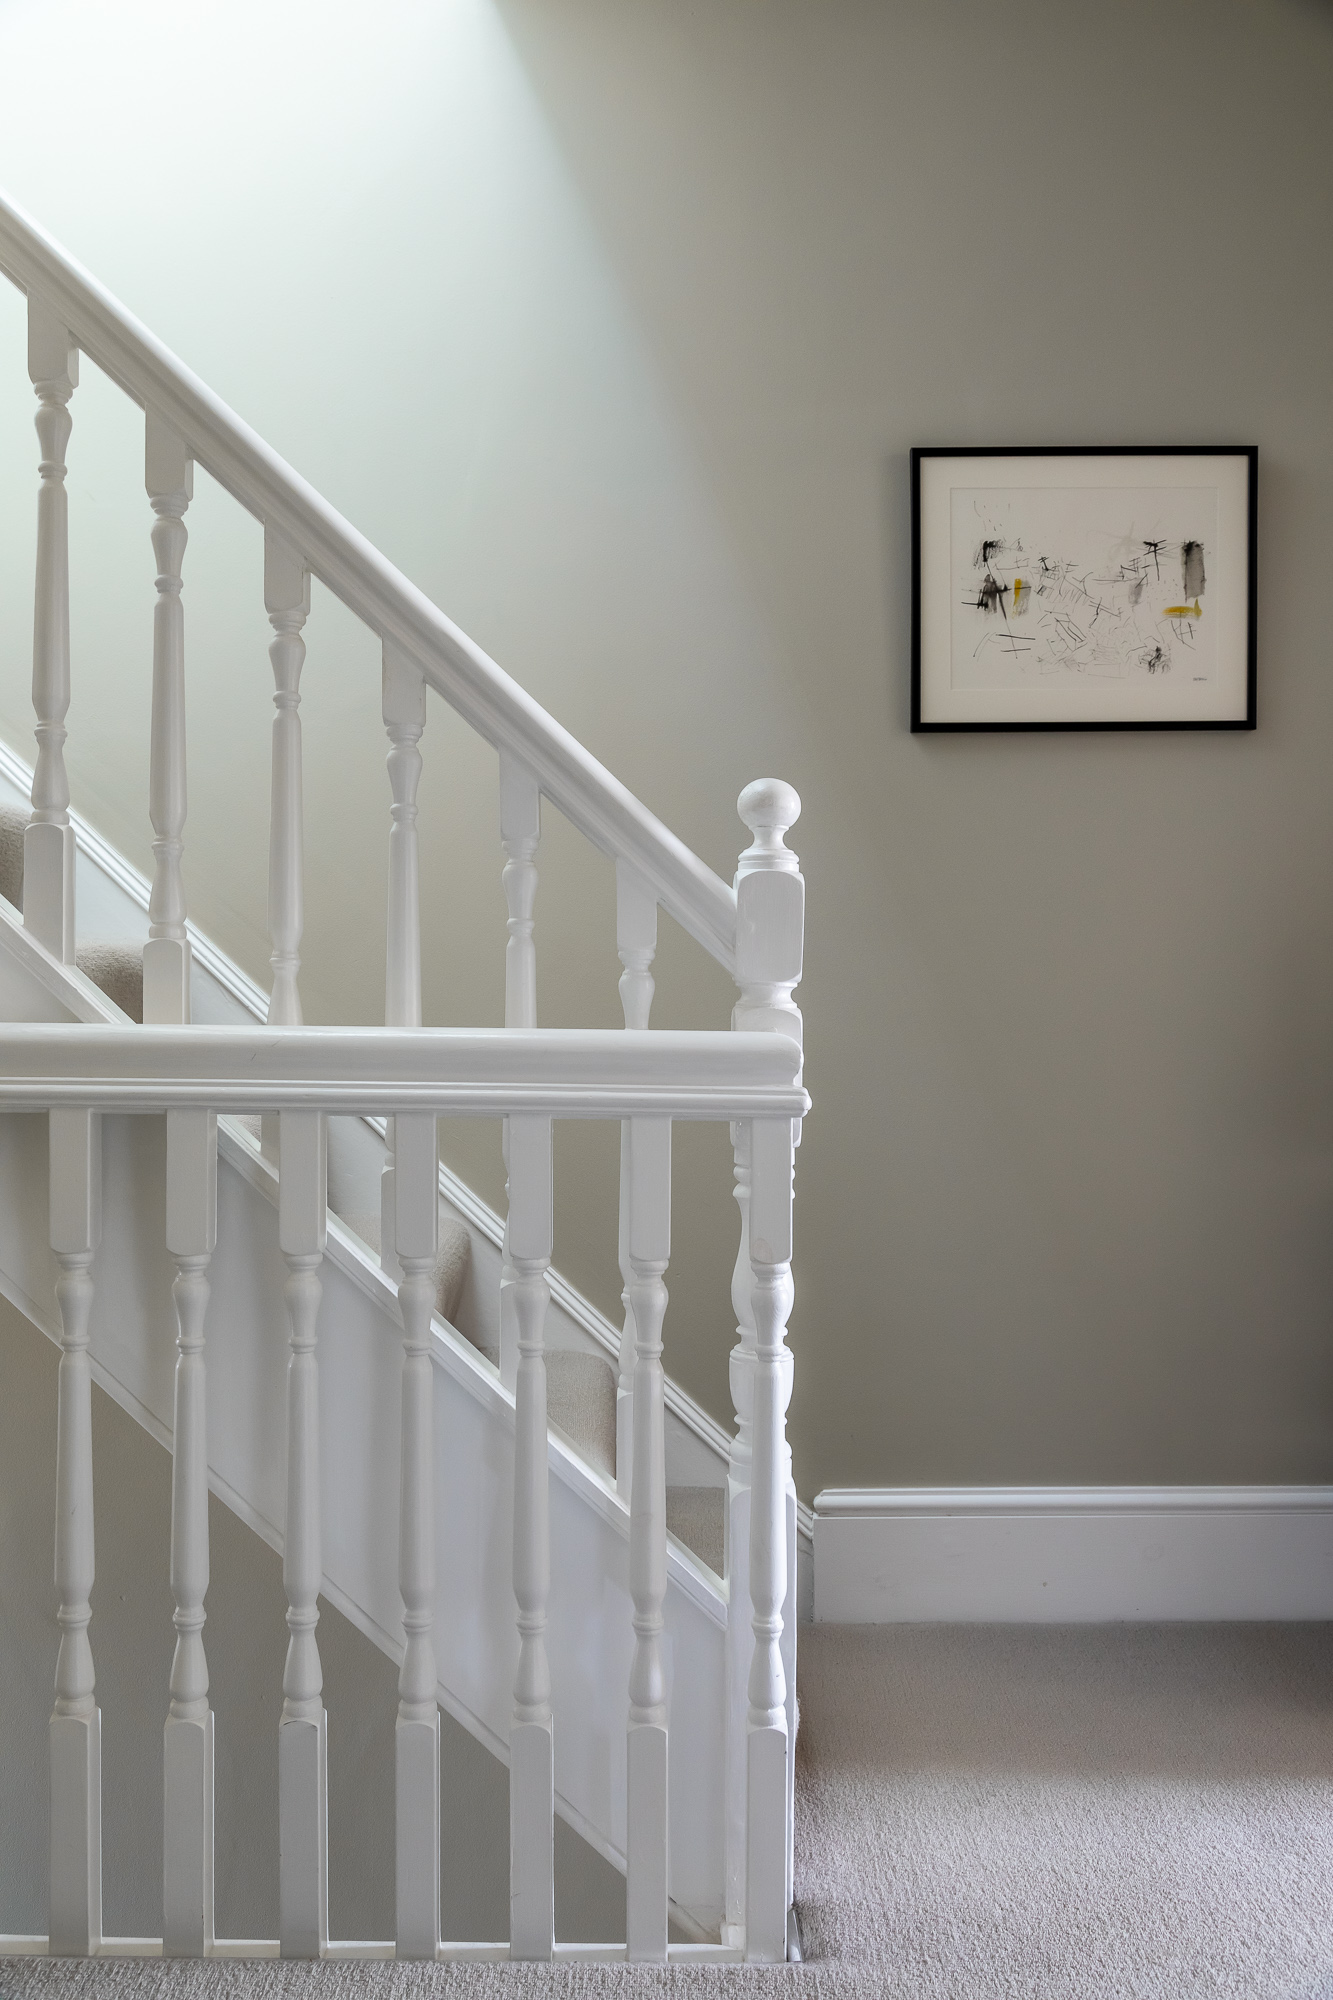 jonathan bond, white stairs & banisters, mill road, cambridge